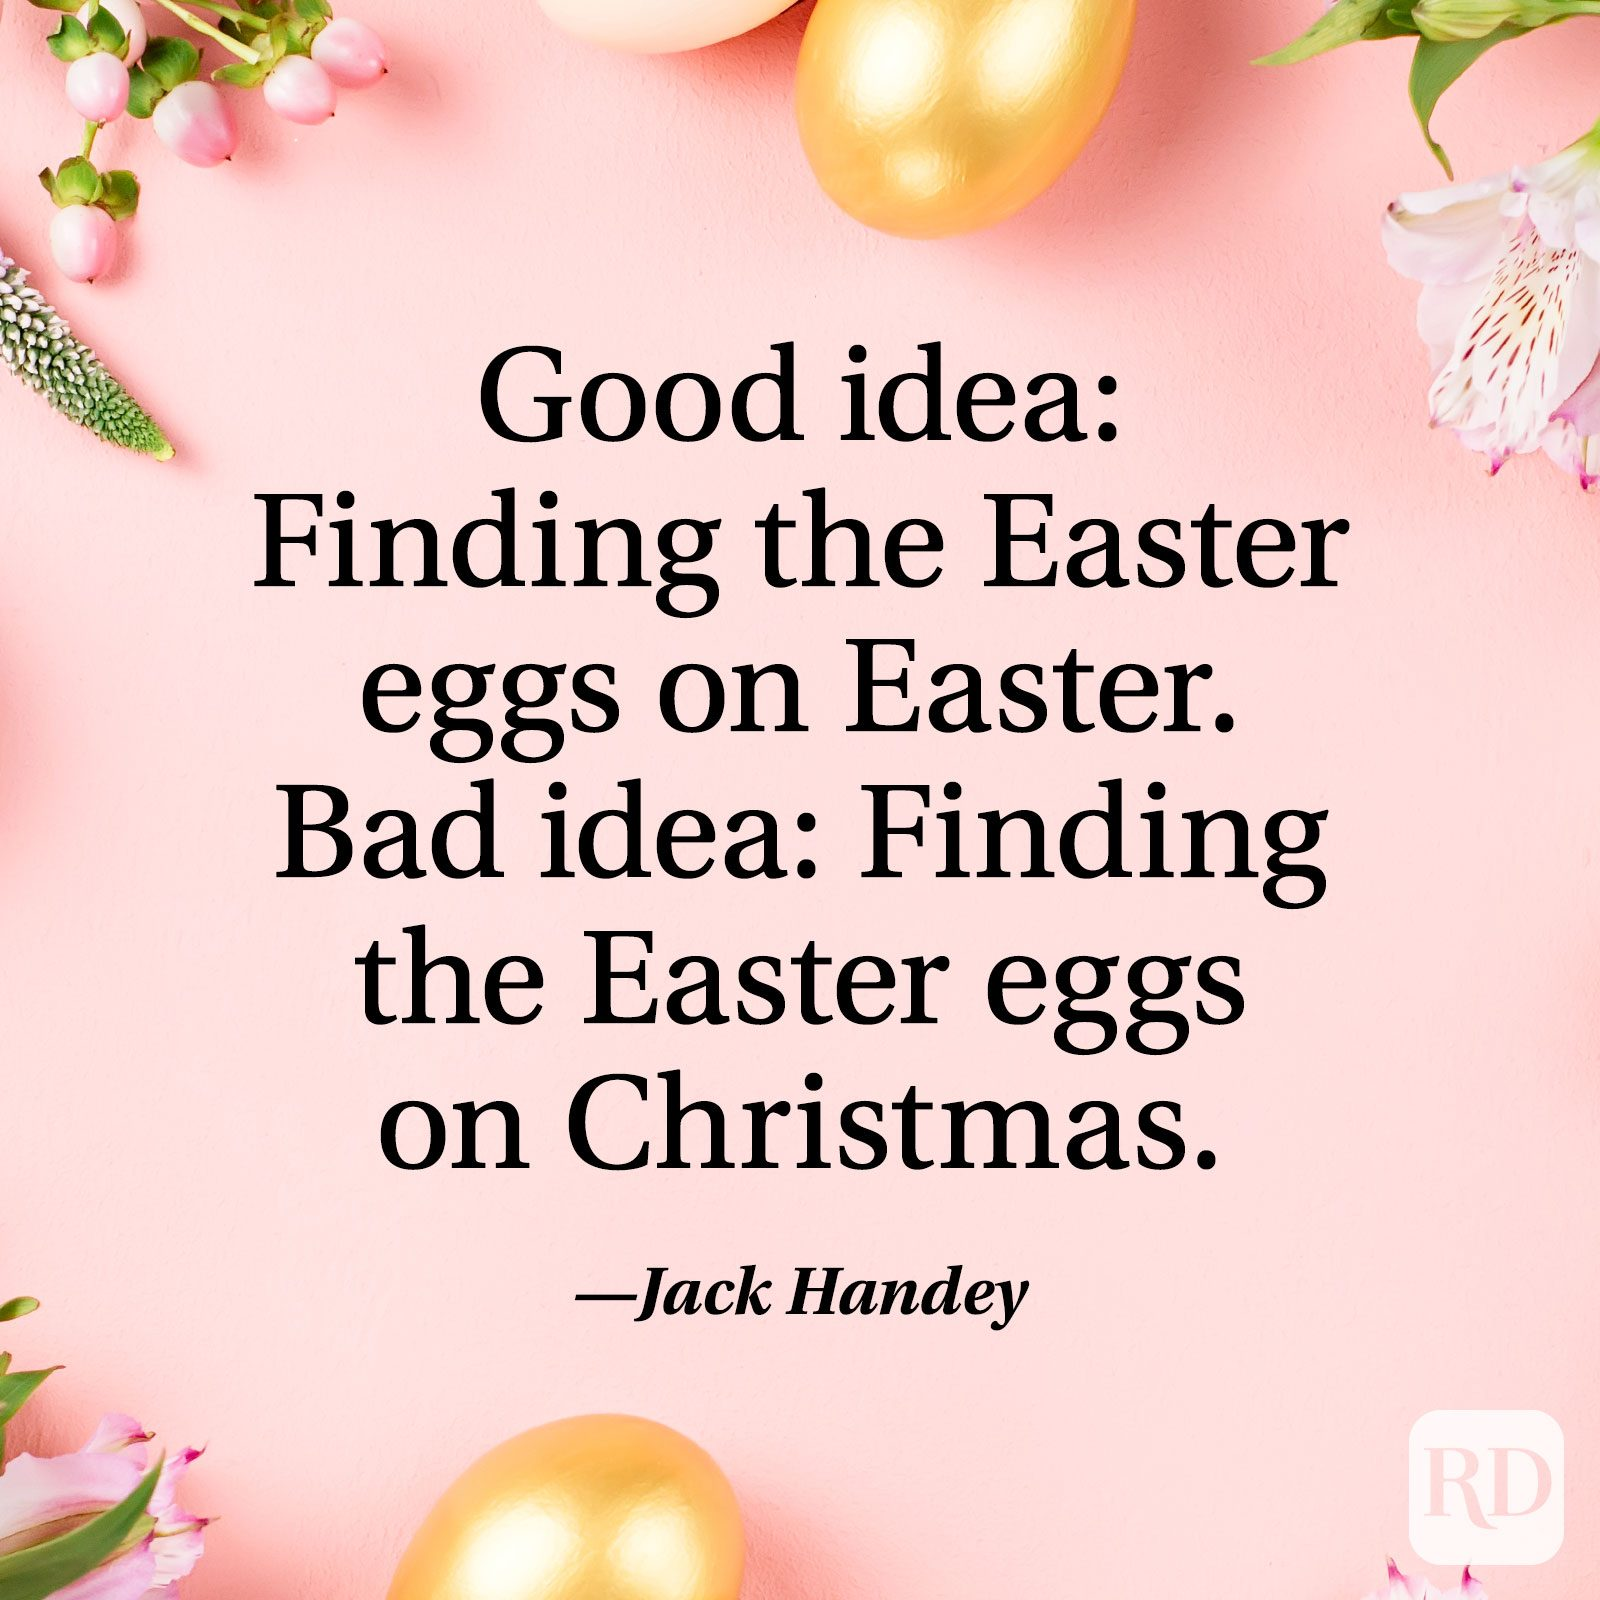 """Good idea: Finding the Easter eggs on Easter. Bad idea: finding the Easter eggs on Christmas."" — Jack Handey"